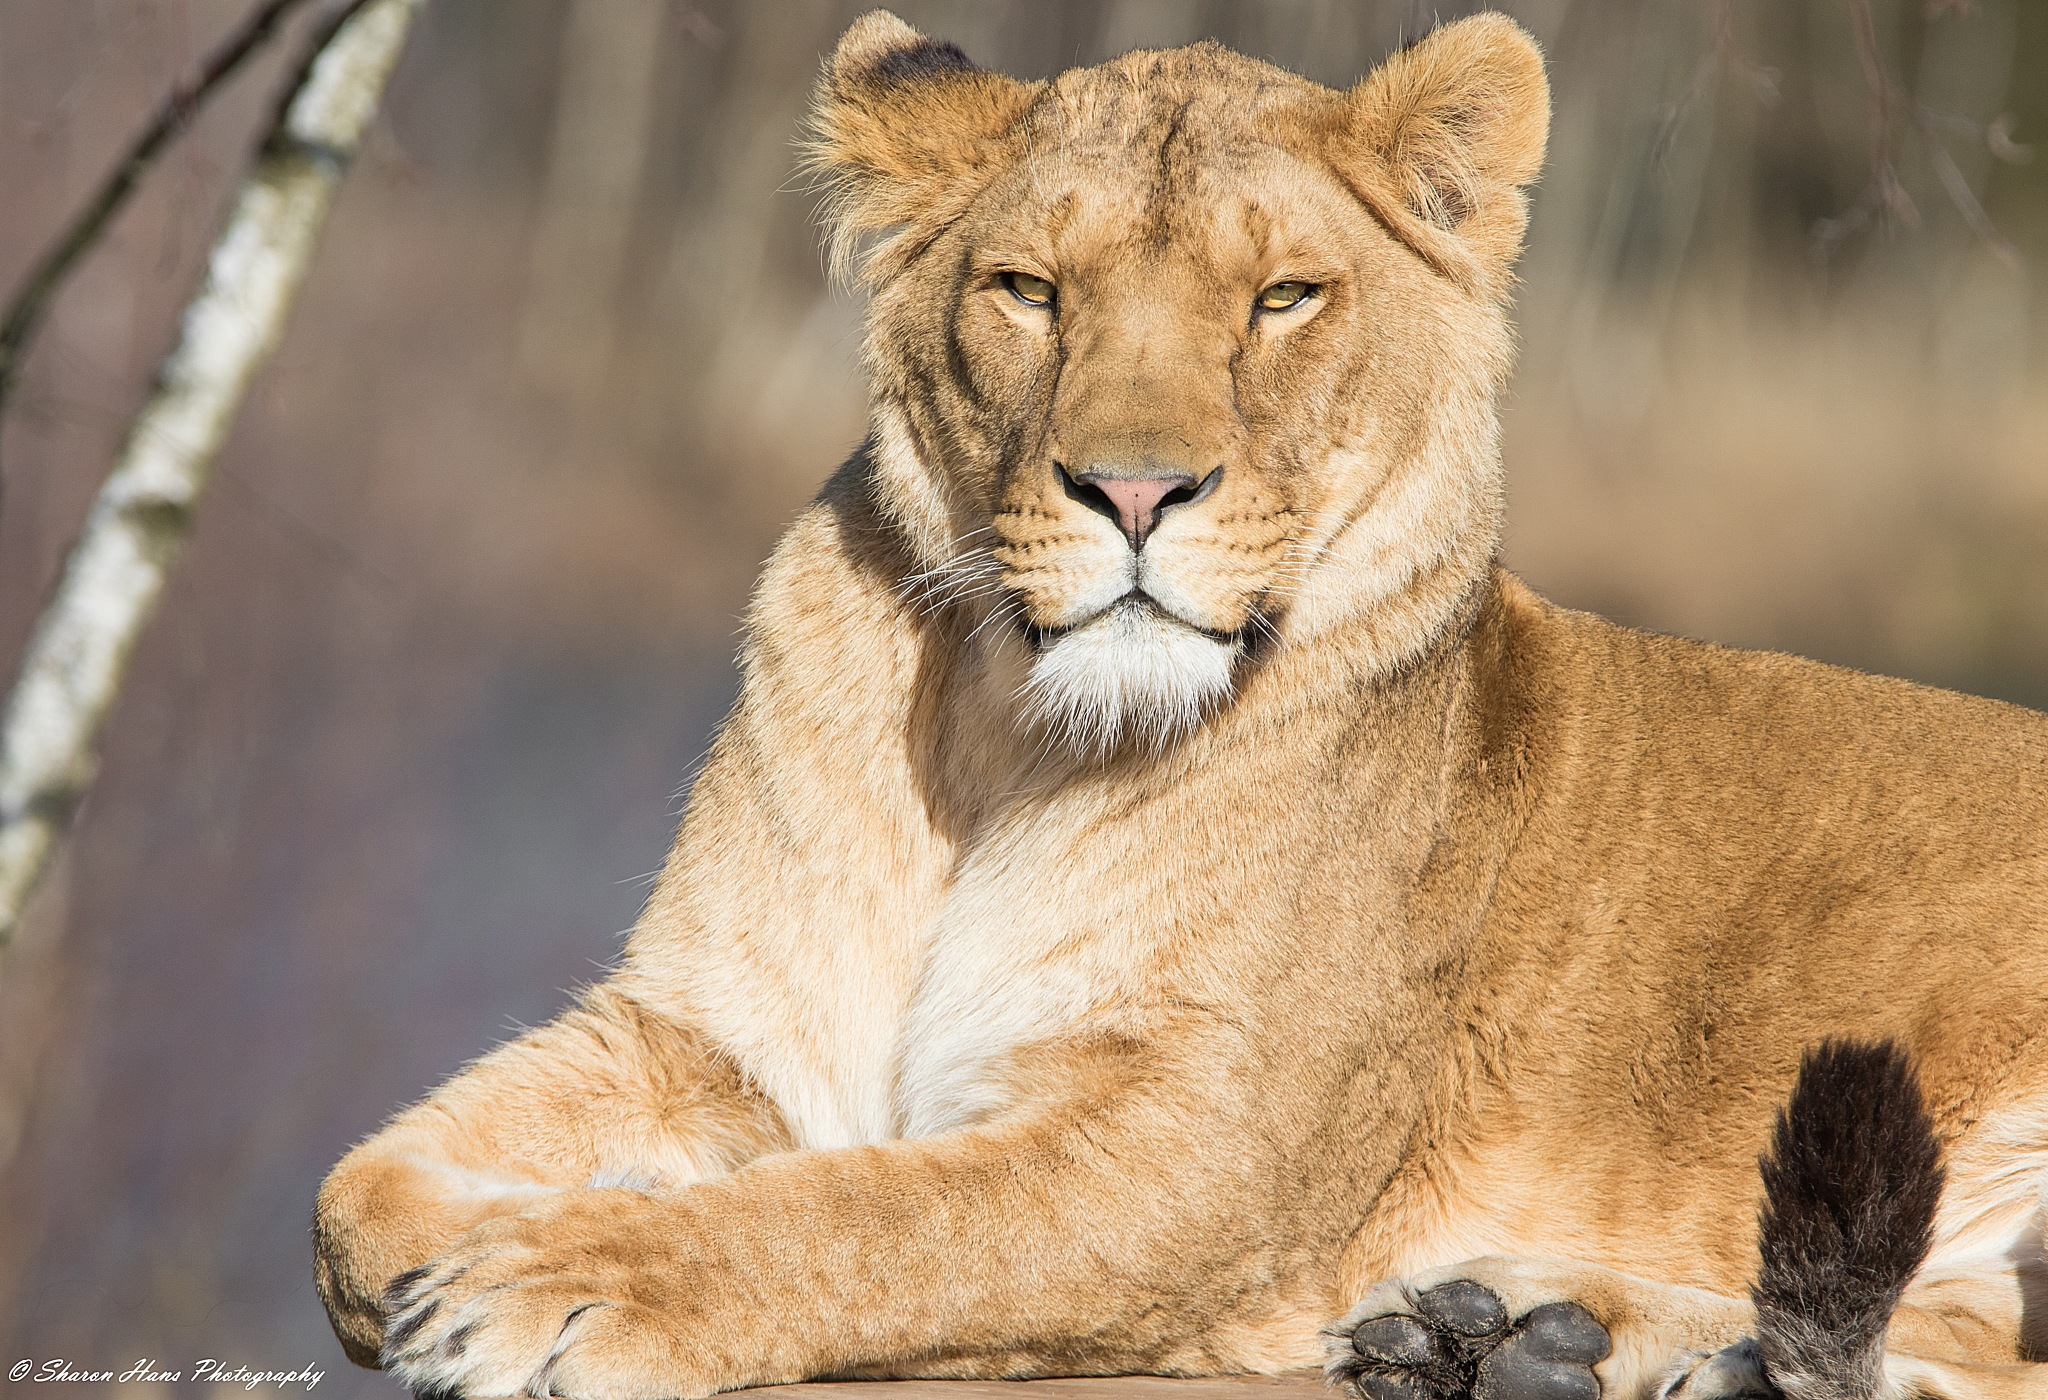 African Lioness by Sharon Hans